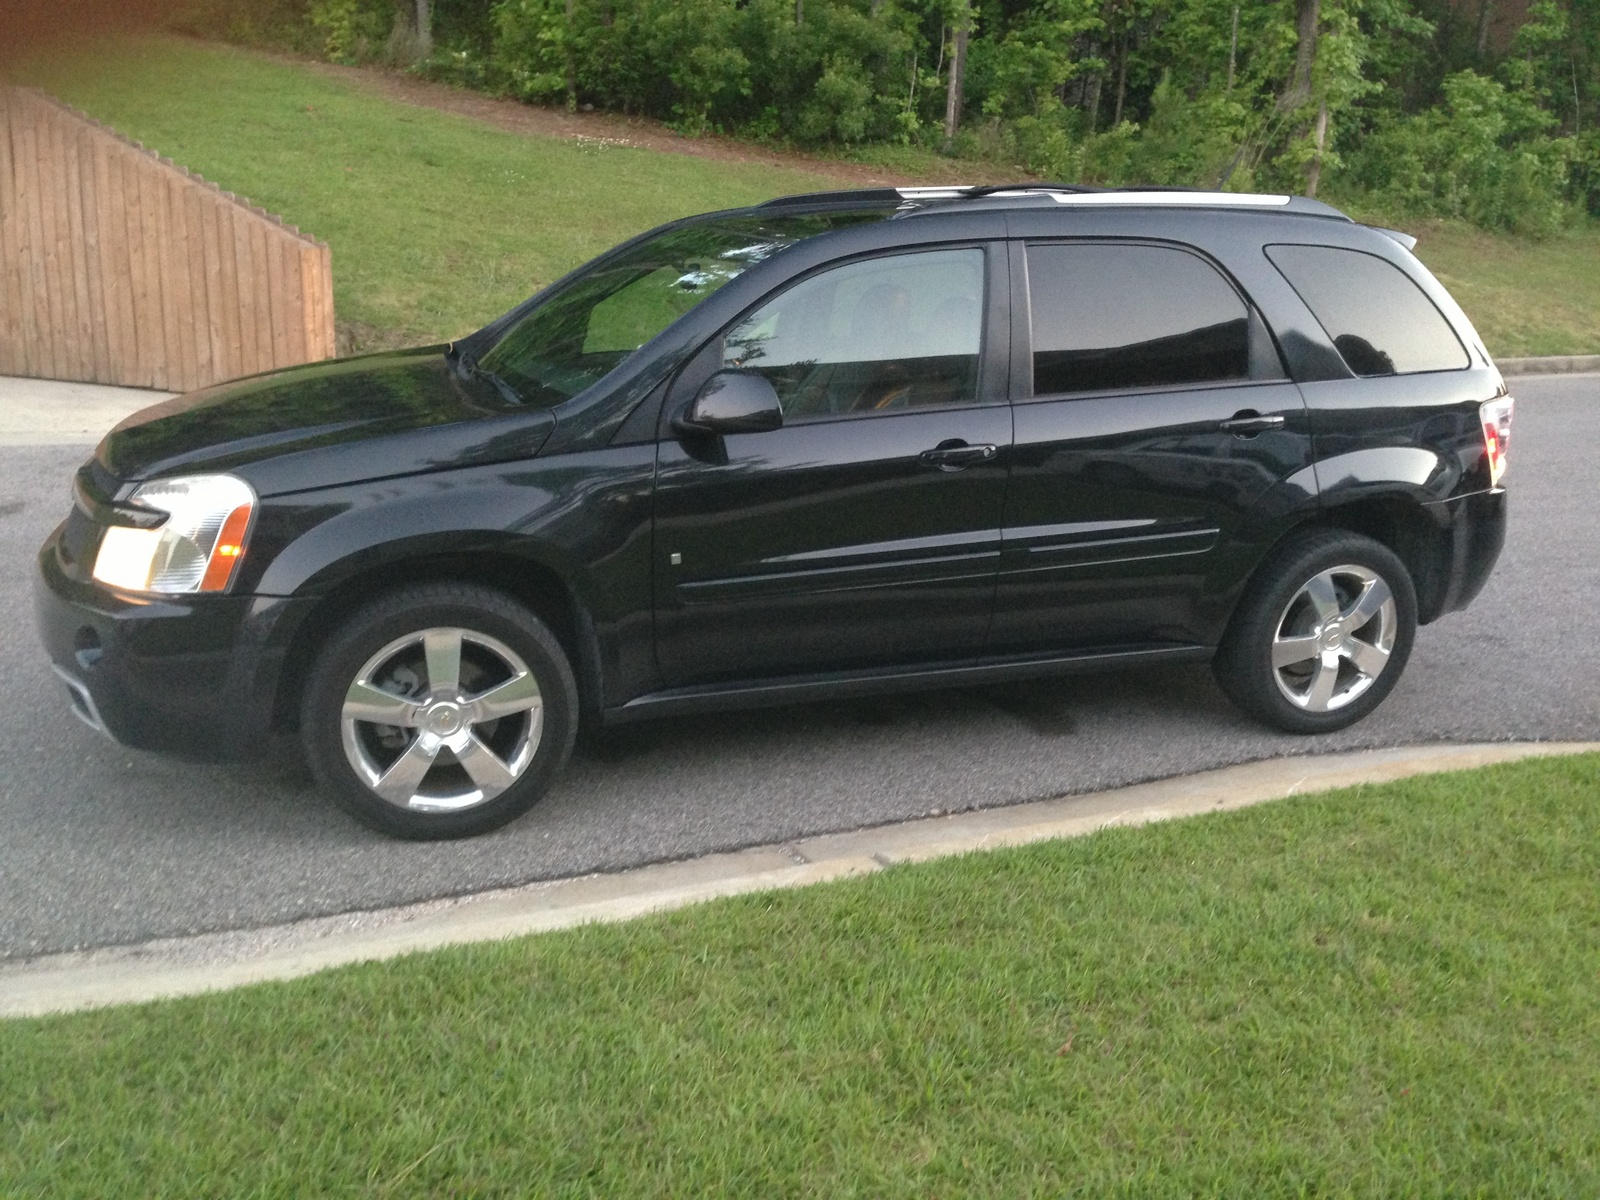 2008 chevrolet equinox exterior pictures cargurus. Cars Review. Best American Auto & Cars Review